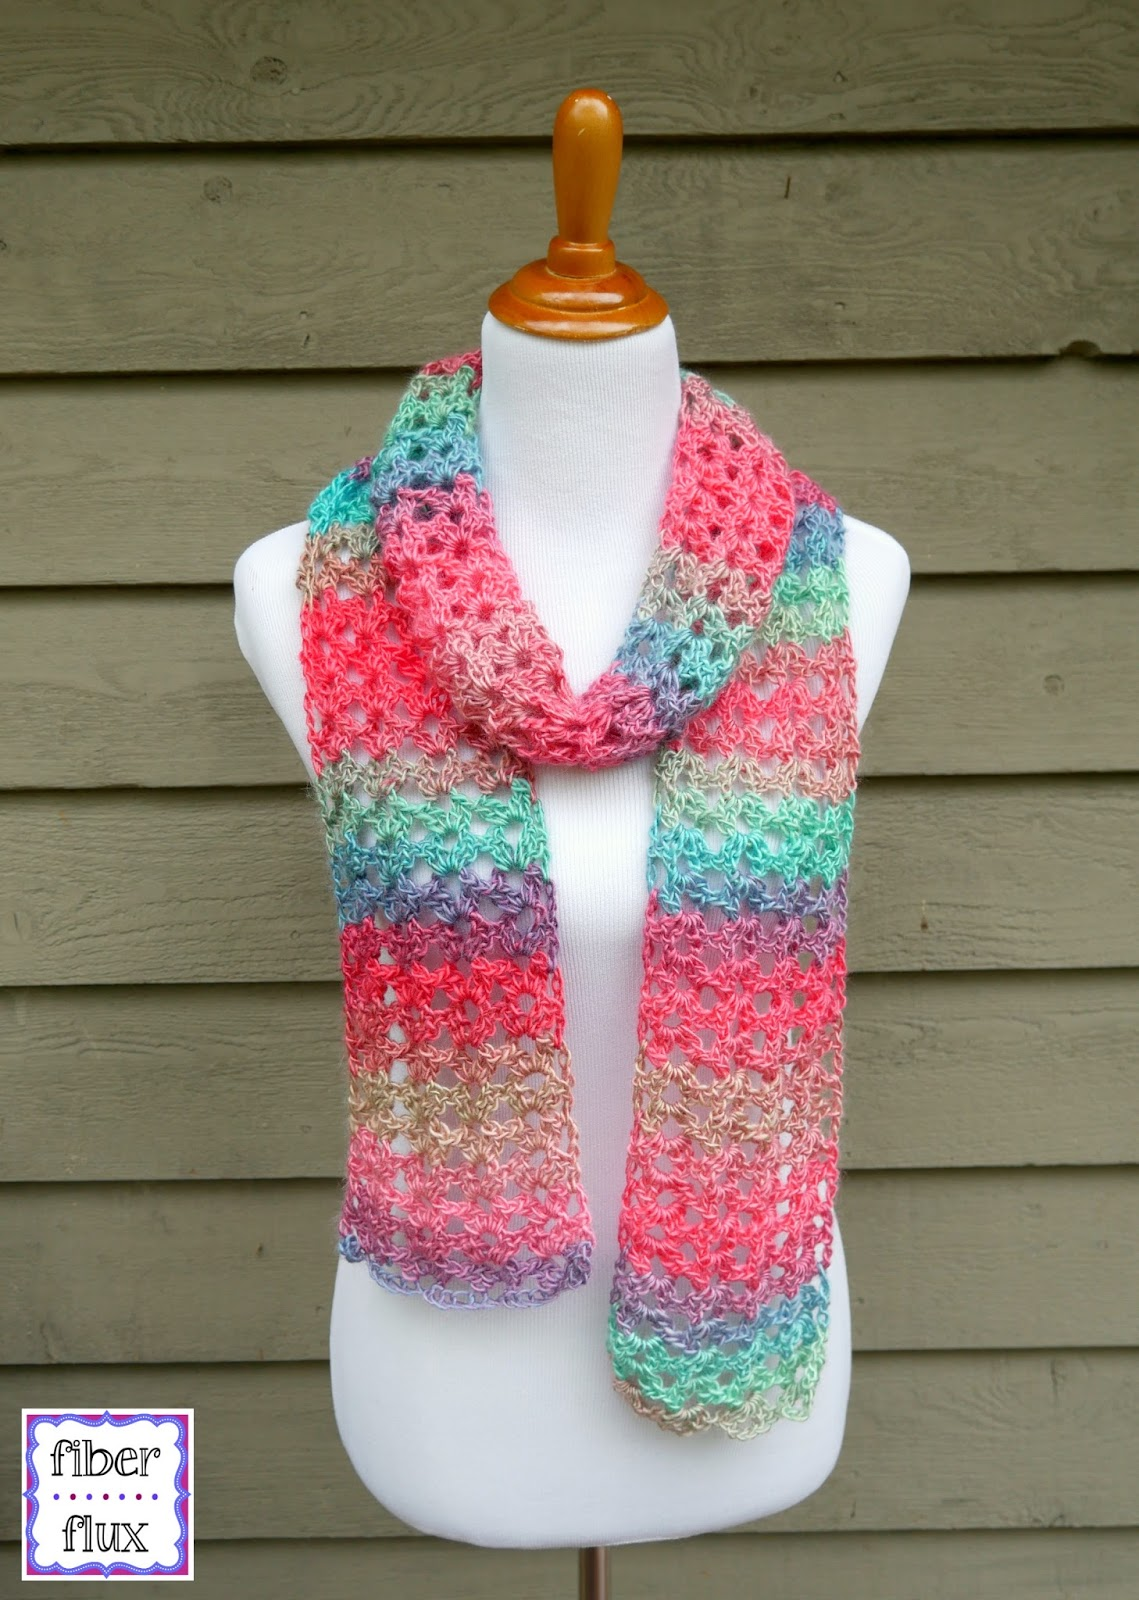 Fiber Flux Free Crochet Patternisland Lace Scarf